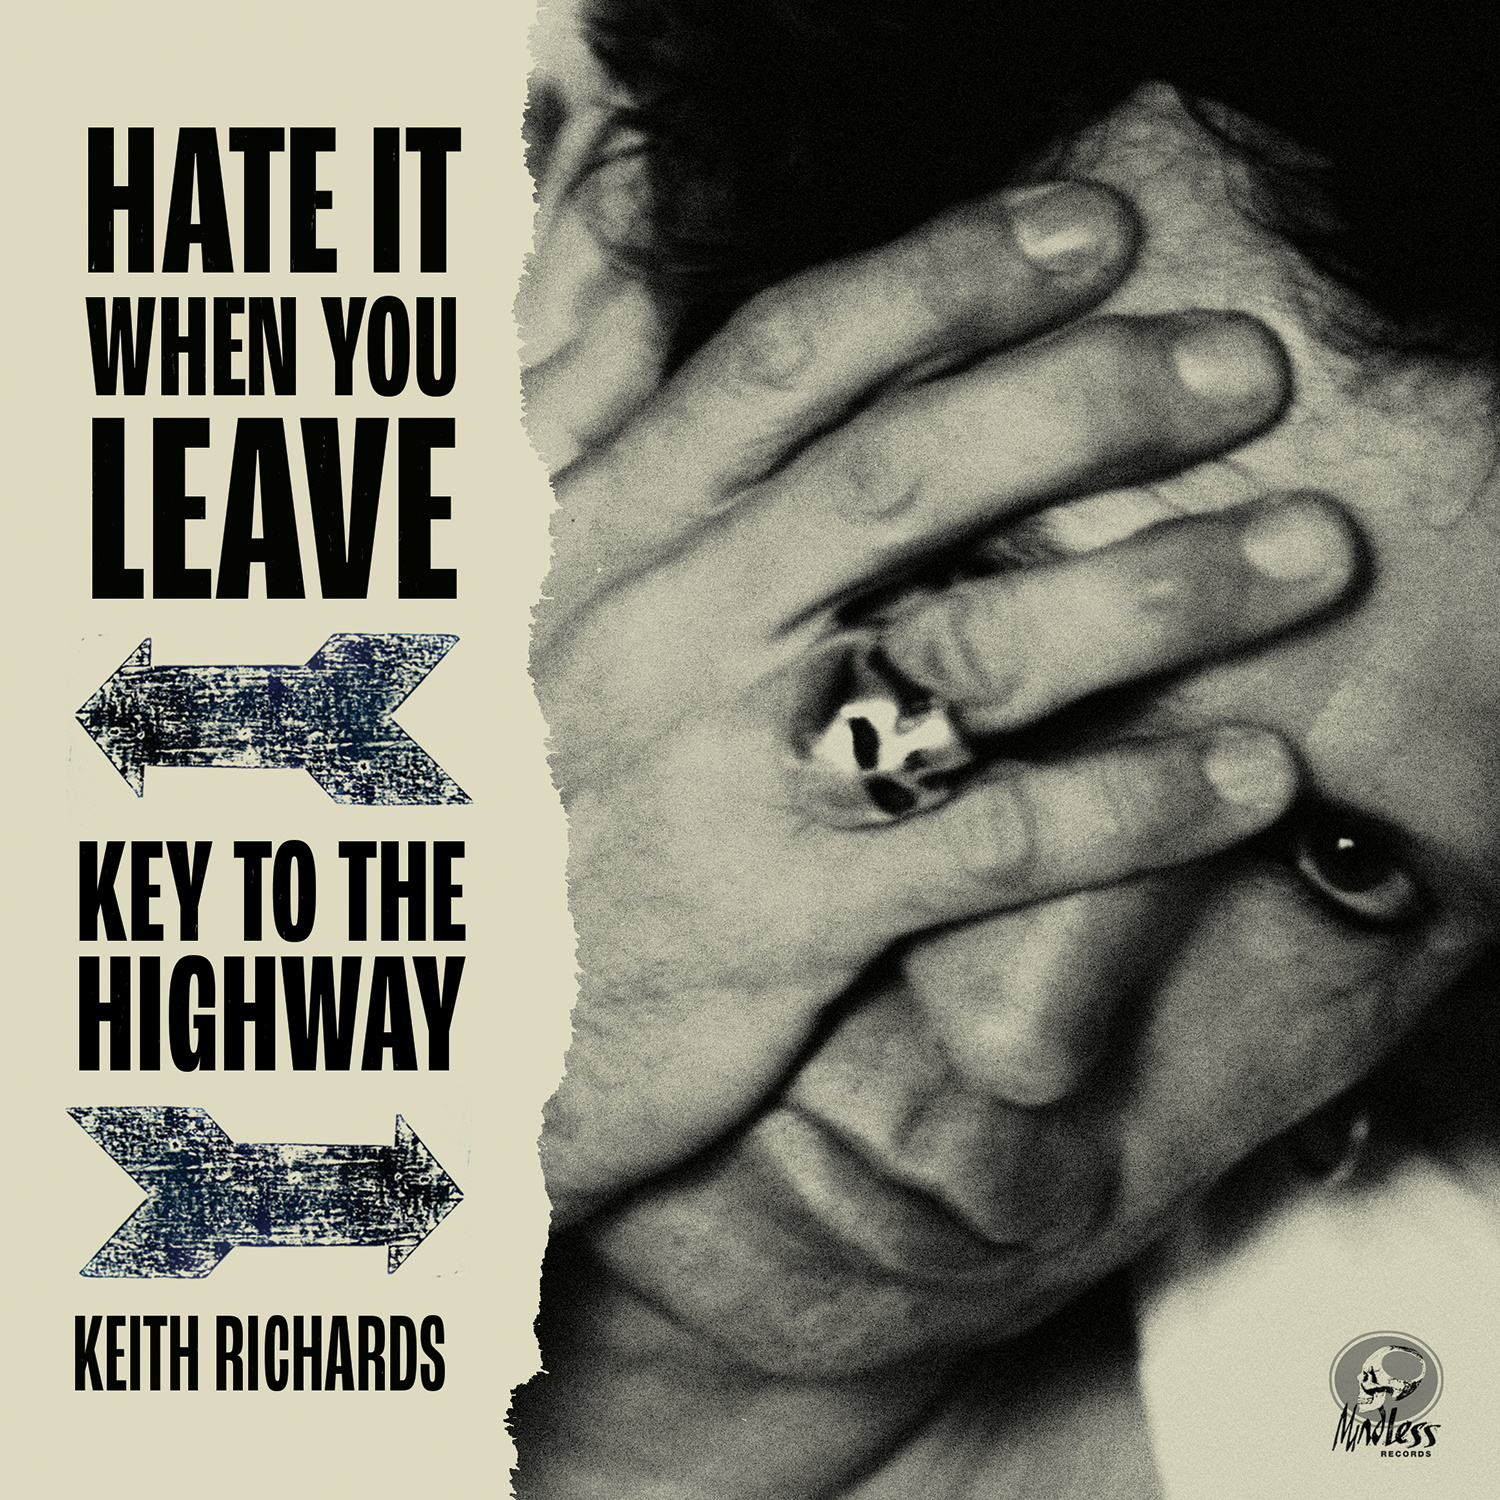 Keith Richards - Hate It When You Leave b/w Key To The Highway